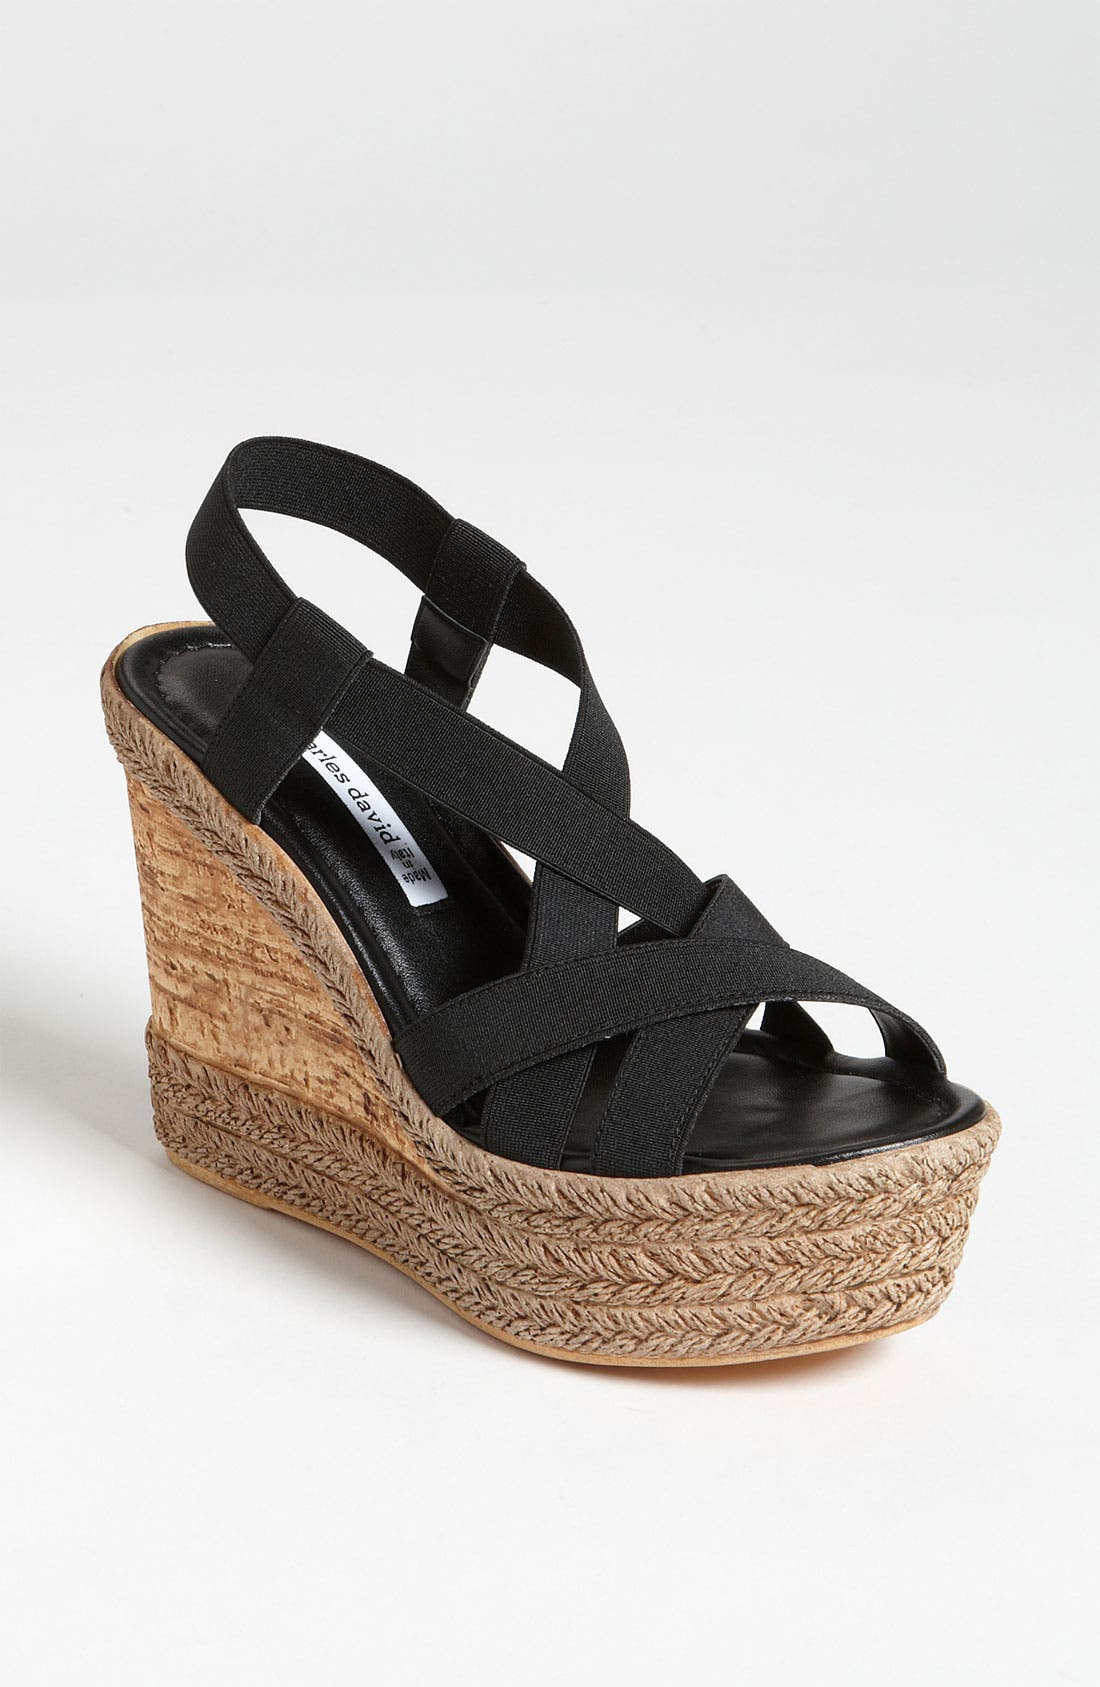 Main Image - Charles David 'Fare' Espadrille Wedge